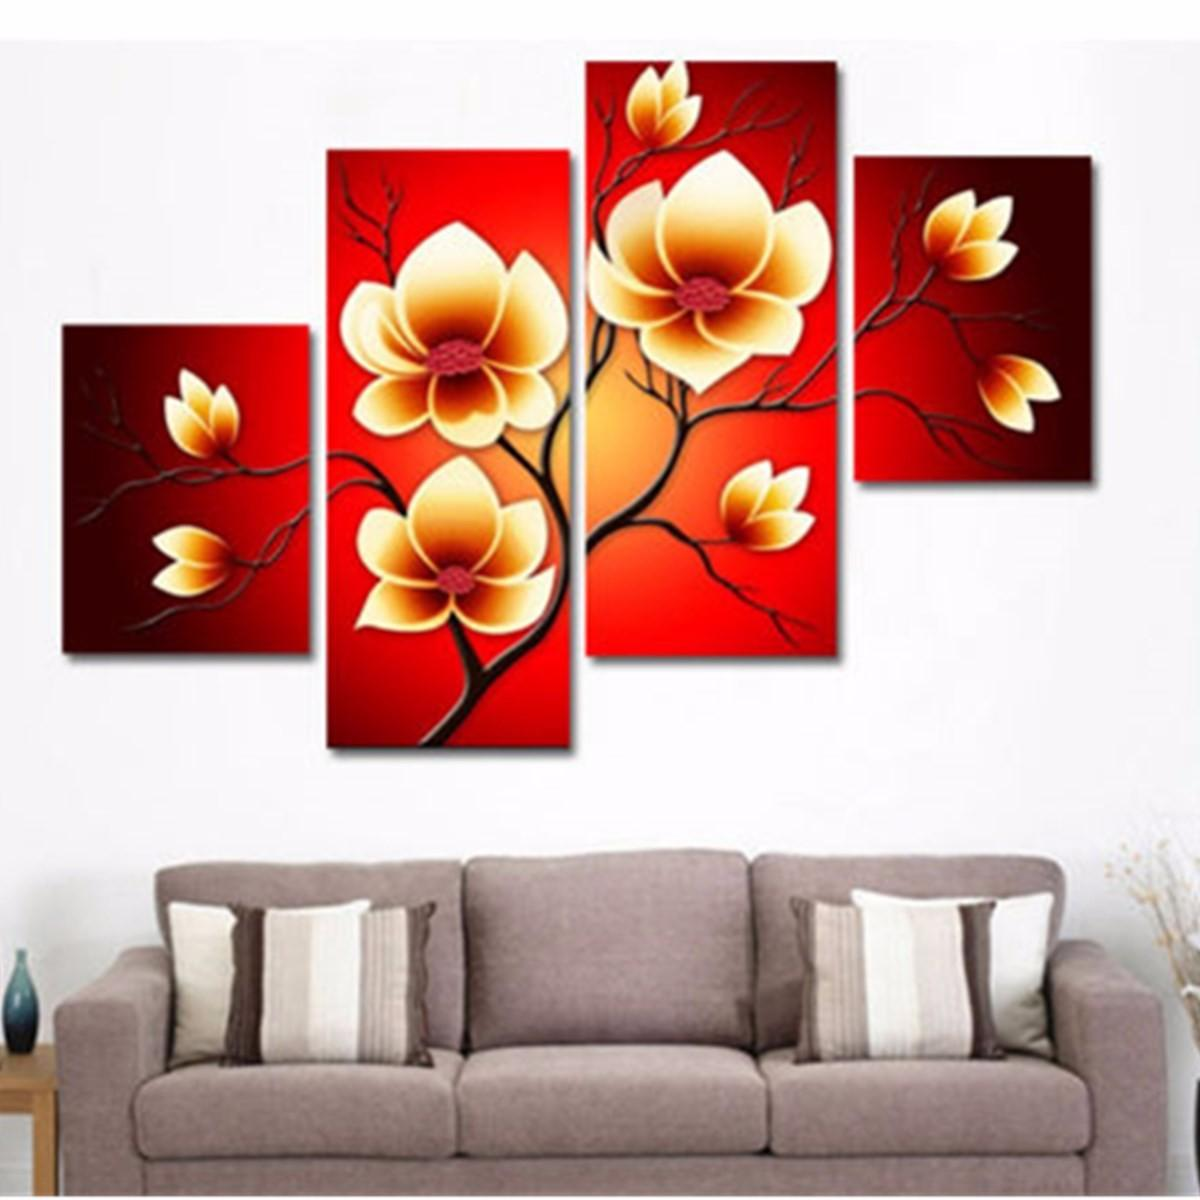 Wall design for sale wall art prices brands review in freebang huge modern abstract wall decor art oil painting on canvas no frame publicscrutiny Images